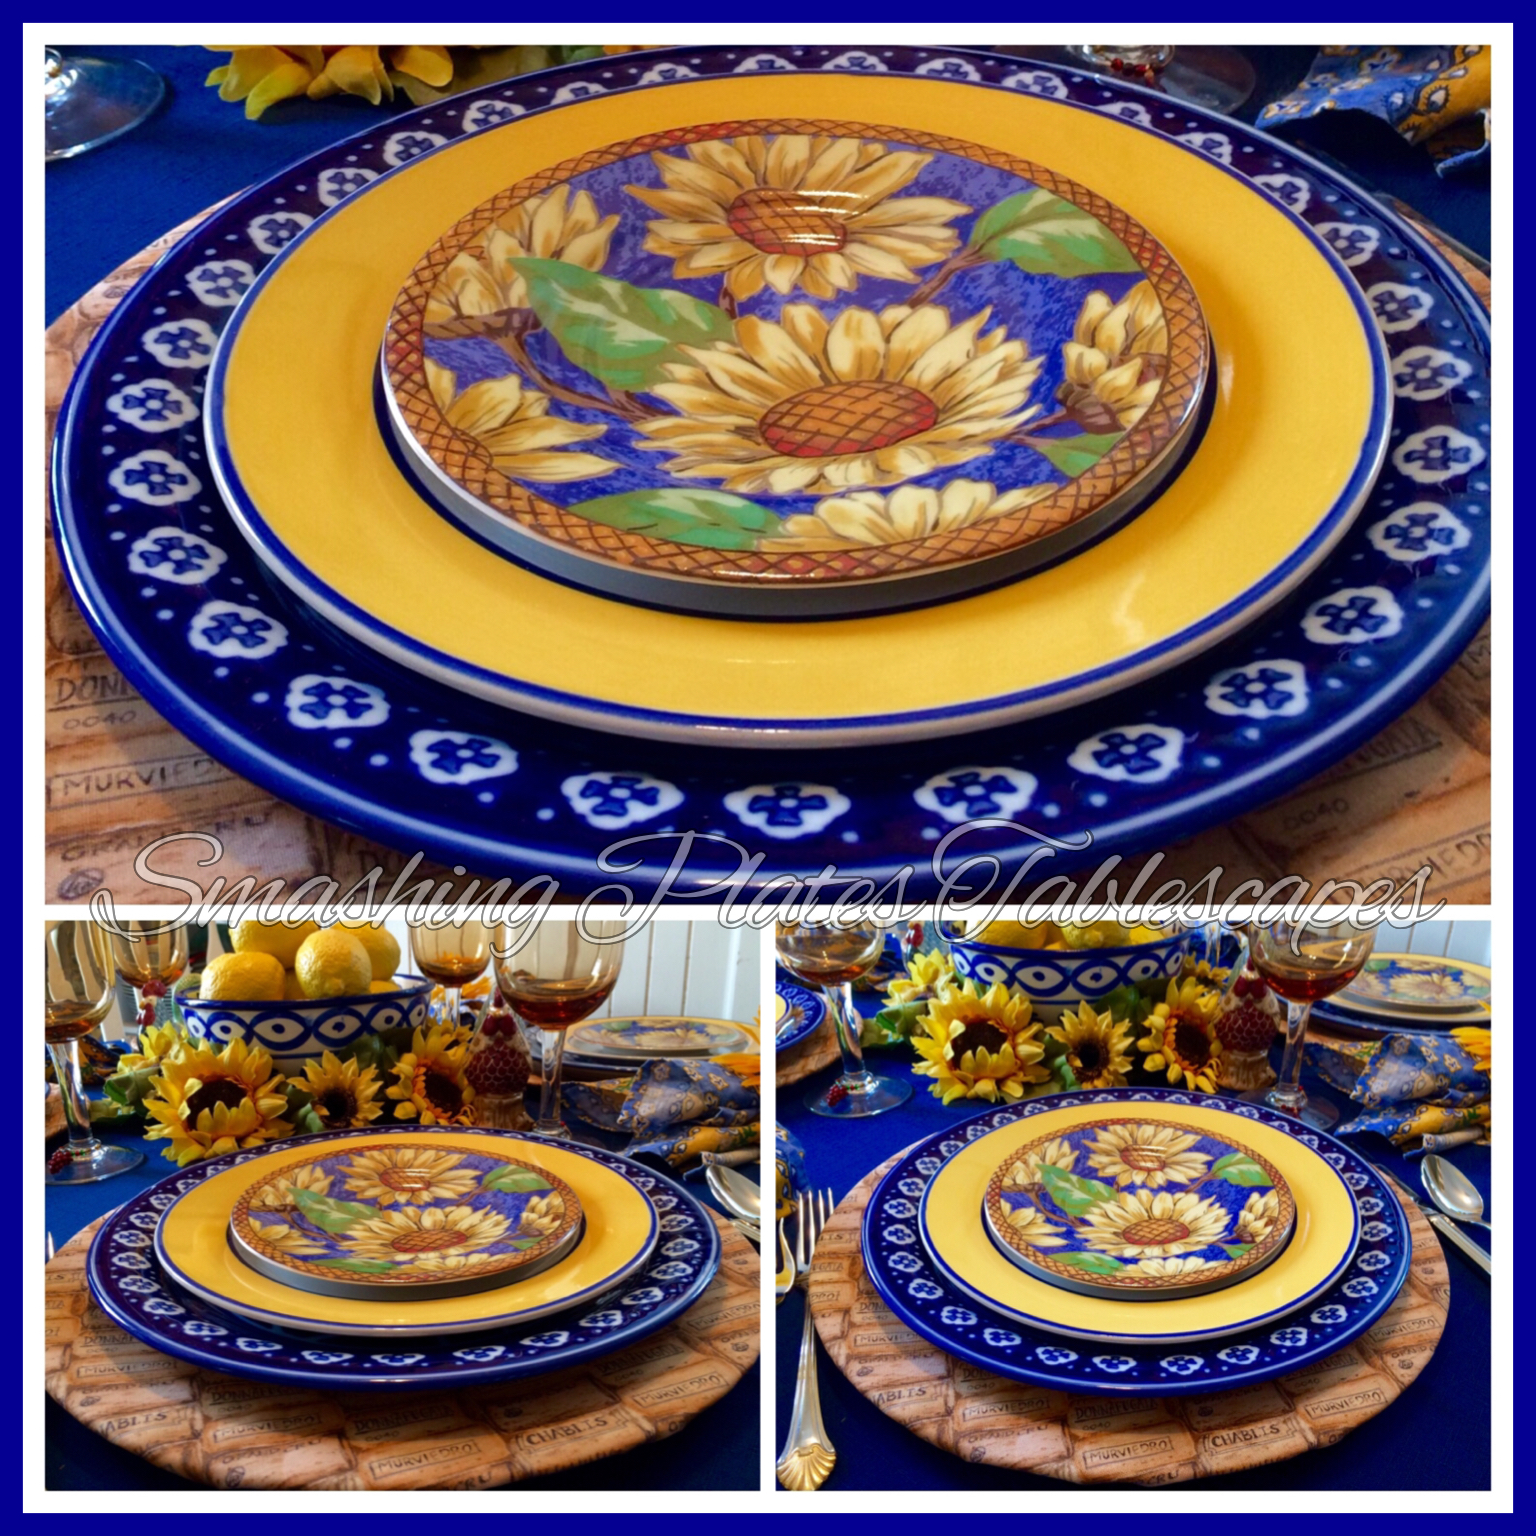 Sunflower place setting.  sc 1 st  Smashing Plates Tablescapes - Blogger : sunflower pattern dinnerware - Pezcame.Com